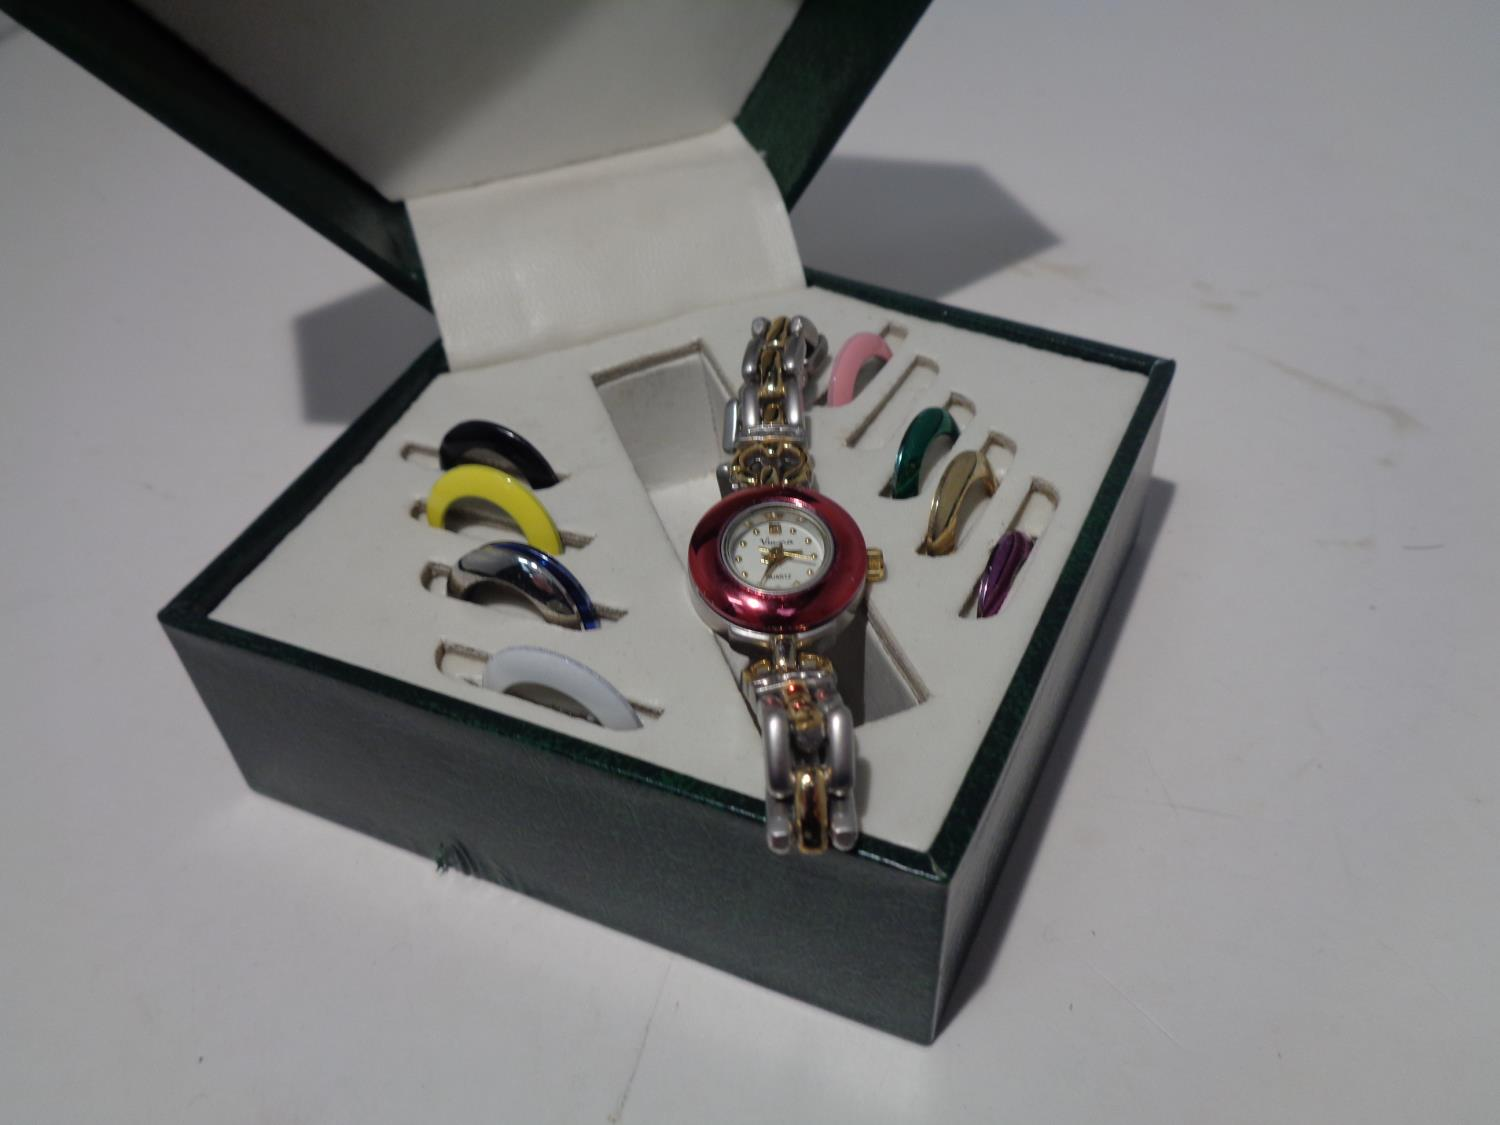 A VIMORA BOXED WATCH WITH COLOURED INTERCHANGEABLE WATCH FACE SURROUNDINGS - Image 5 of 6